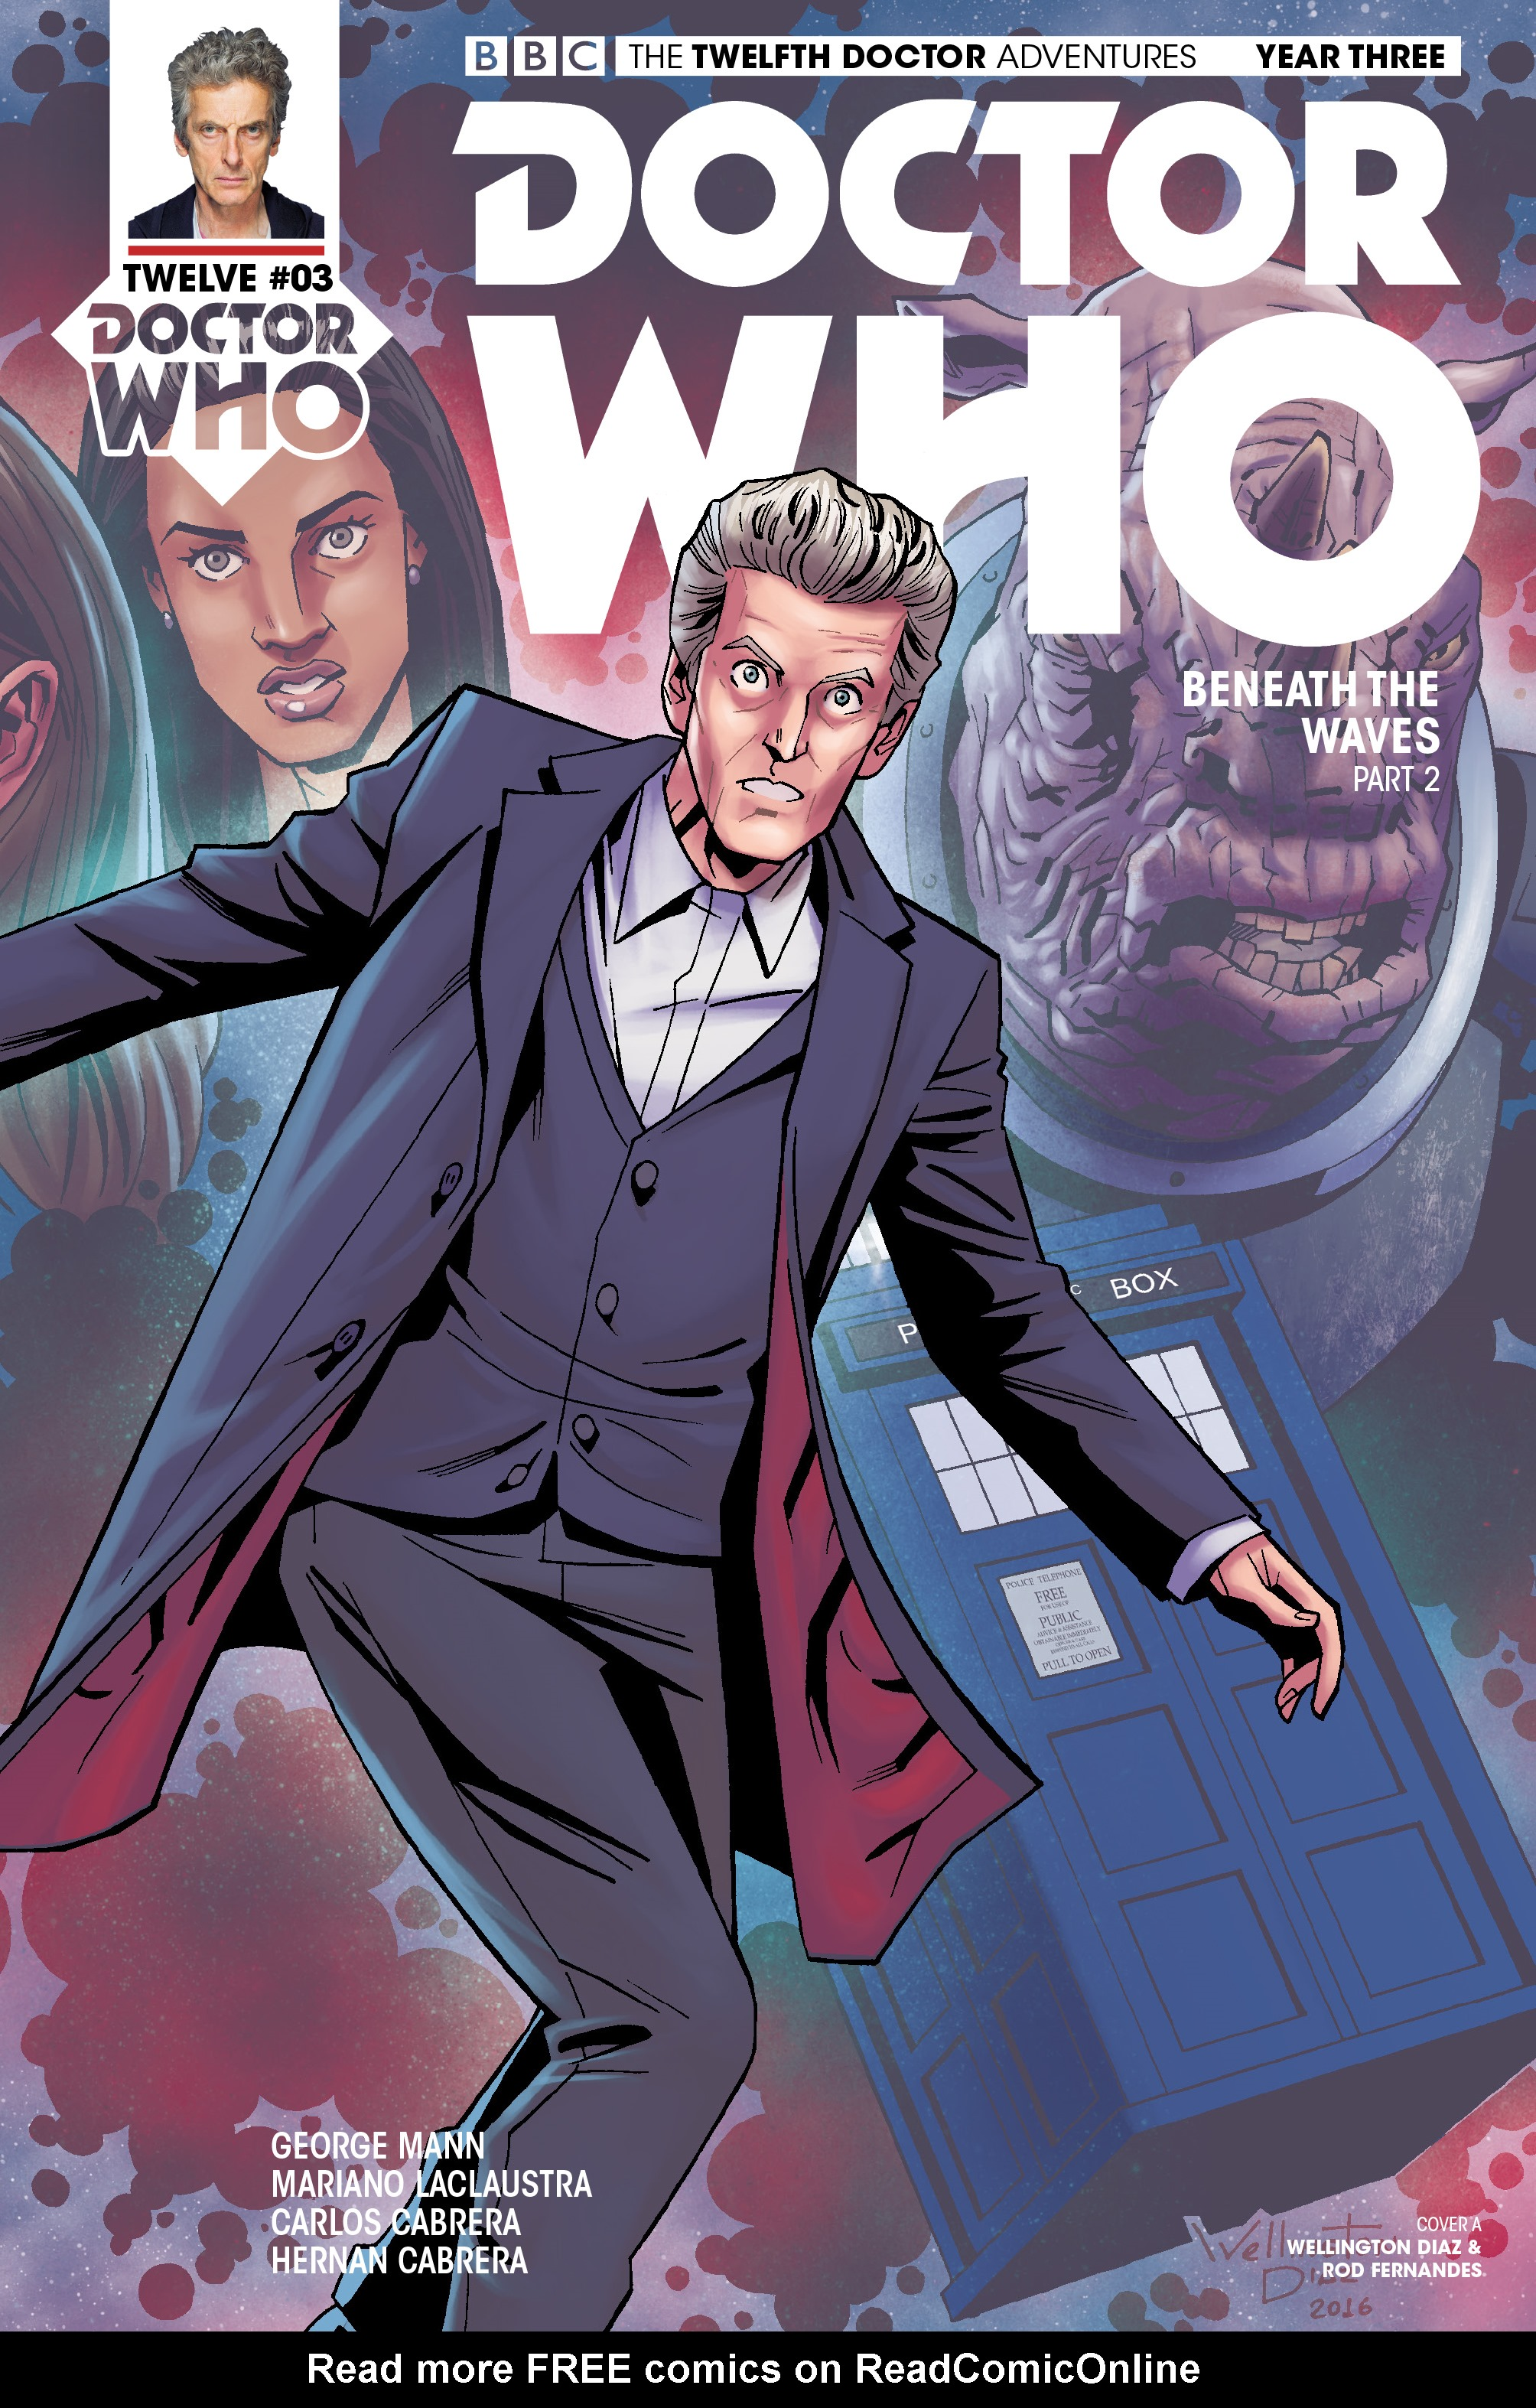 Doctor Who: The Twelfth Doctor Year Three 3 Page 1